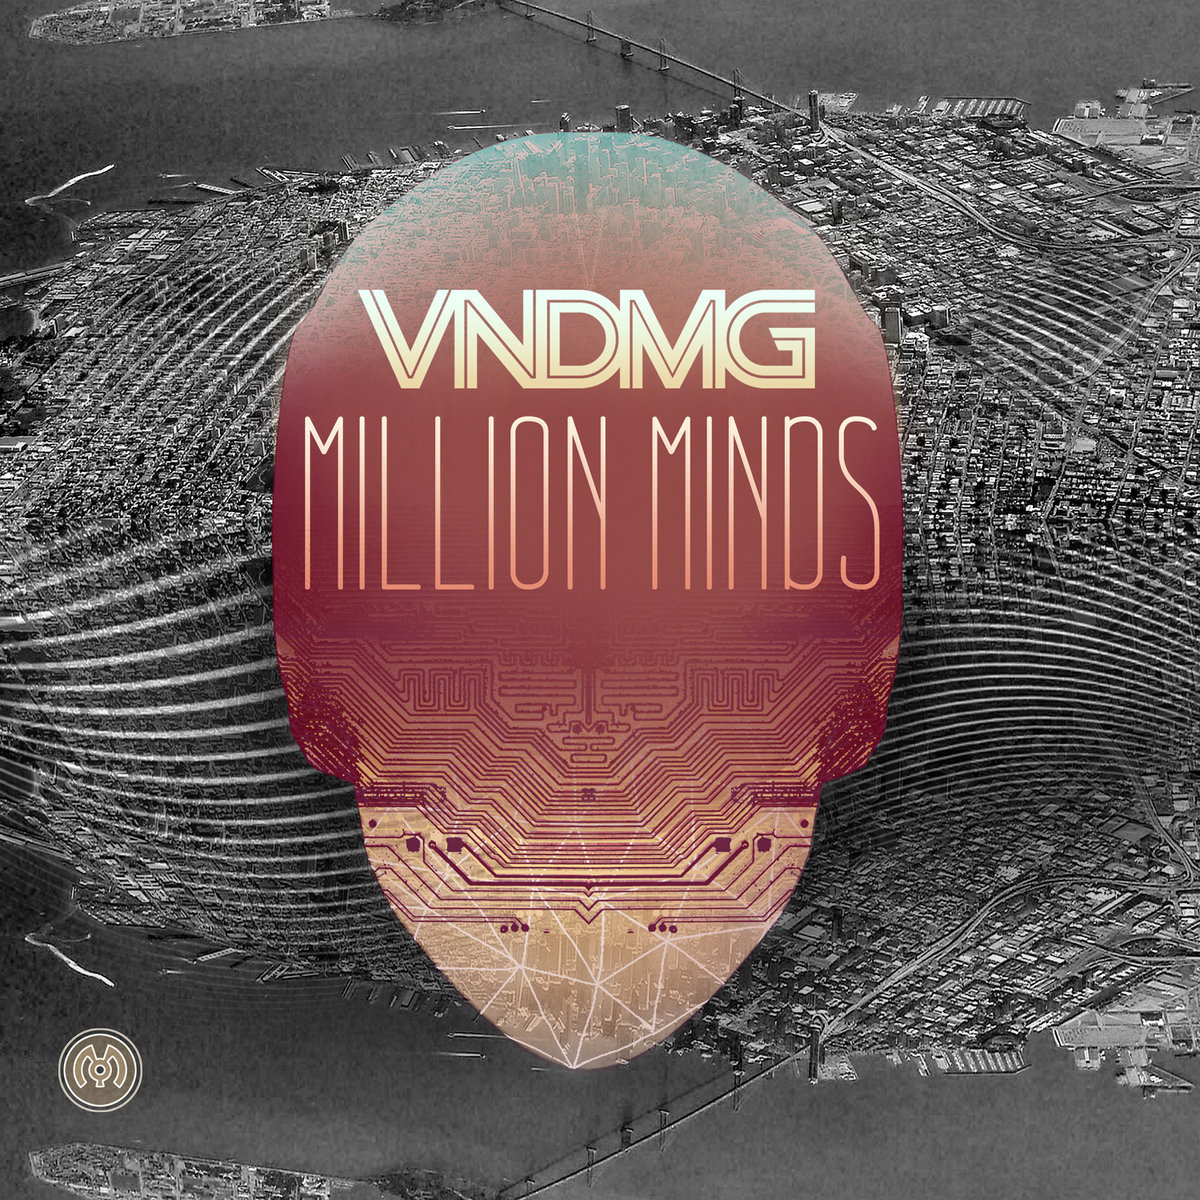 VNDMG feat. Myka 9 - Daggers At Dawn @ 'Million Minds' album (electronic, dubstep)